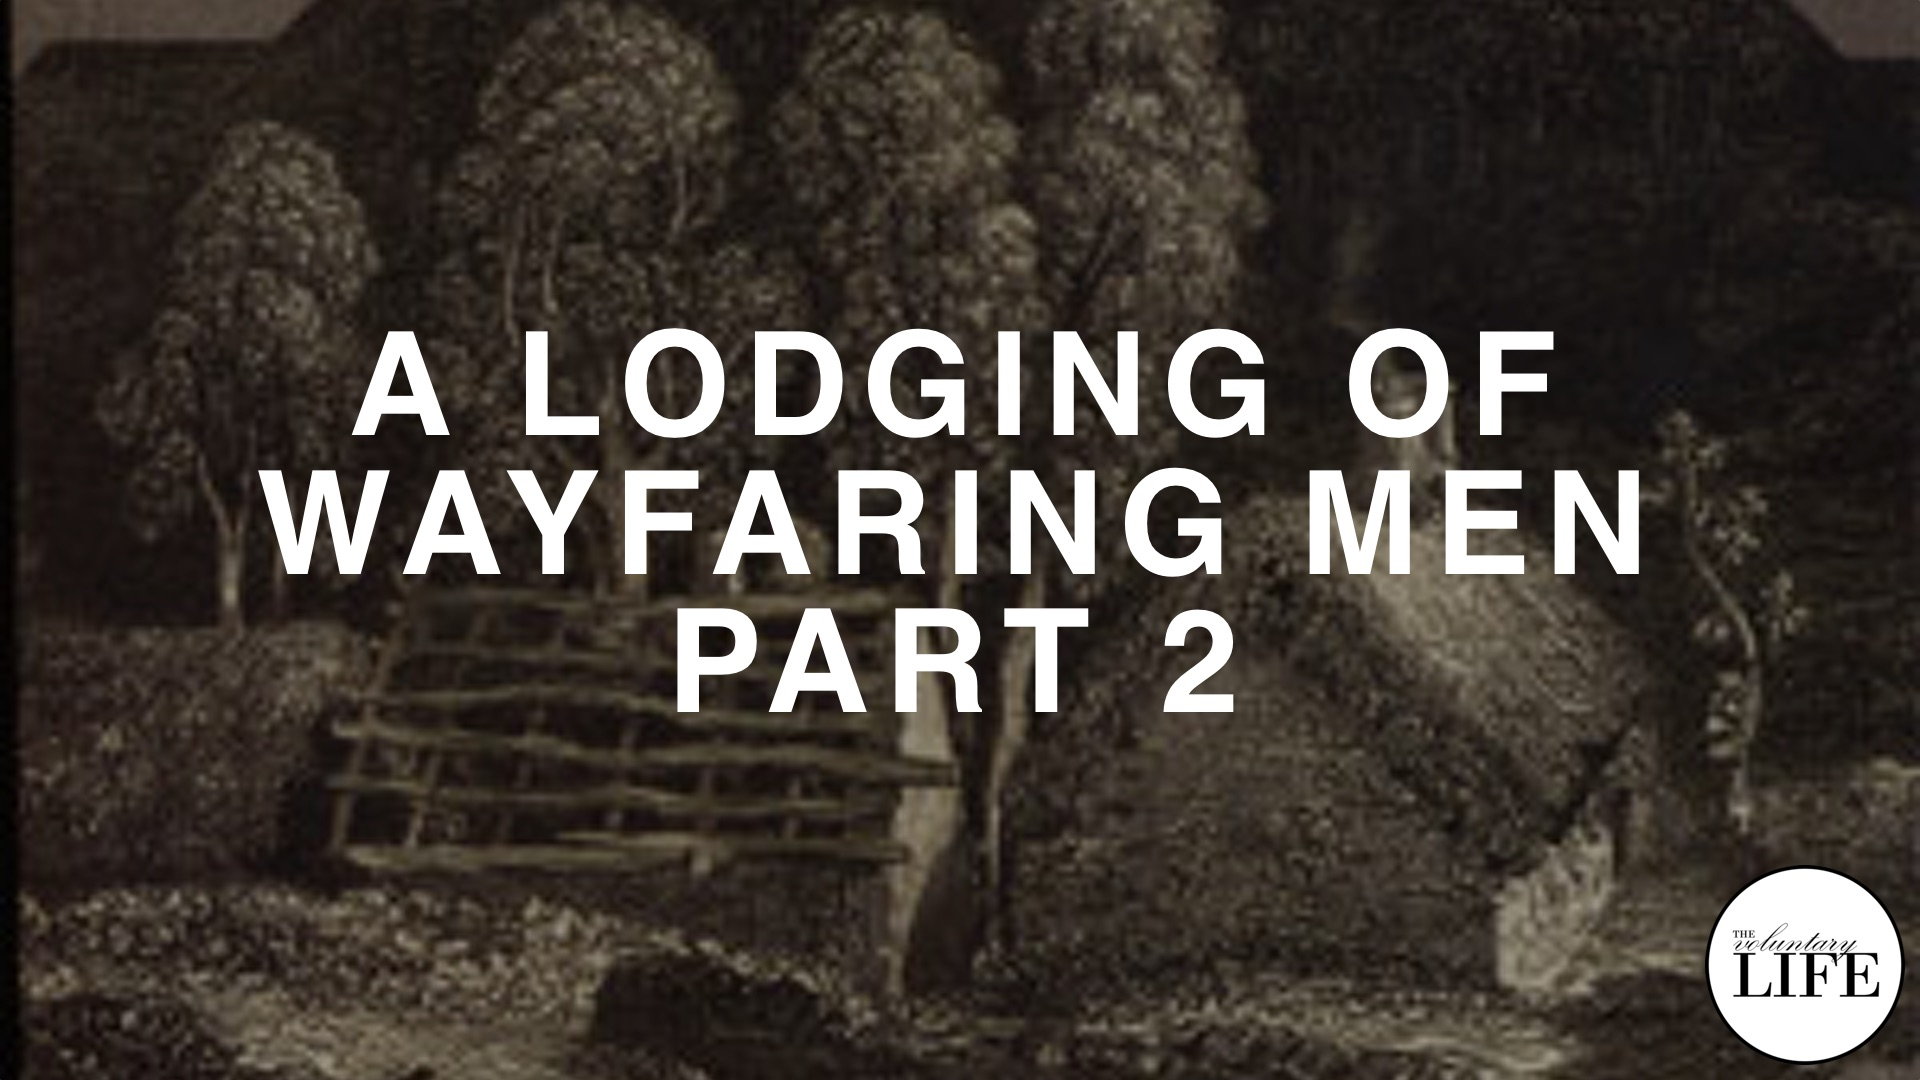 42 Author Interview: Paul Rosenberg on A Lodging of Wayfaring Men Part 2